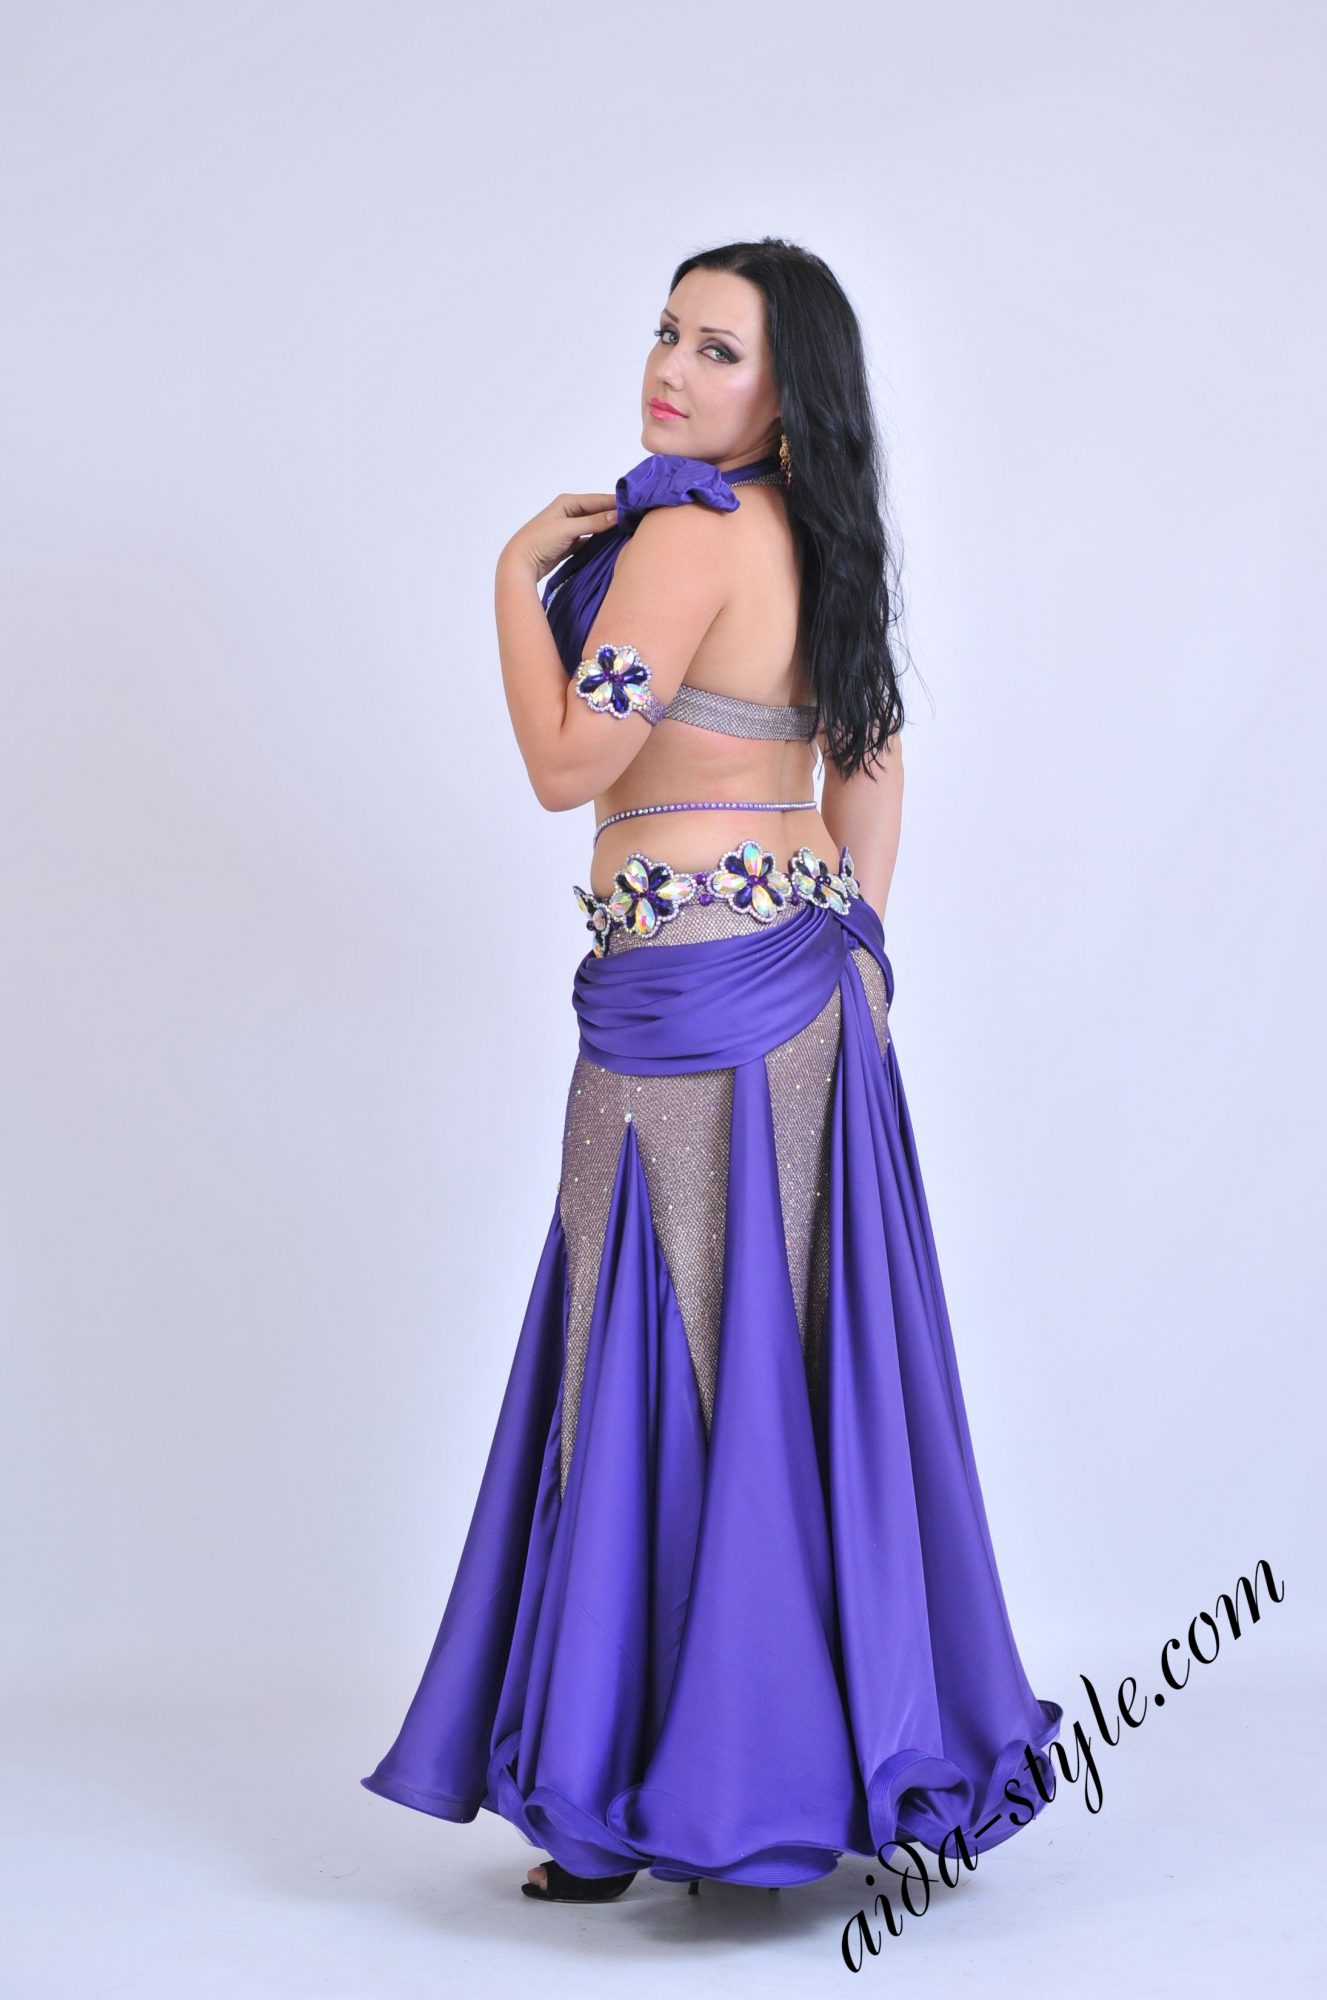 Purple belly dance outfit by Olga Aida with mermaid shape skirt